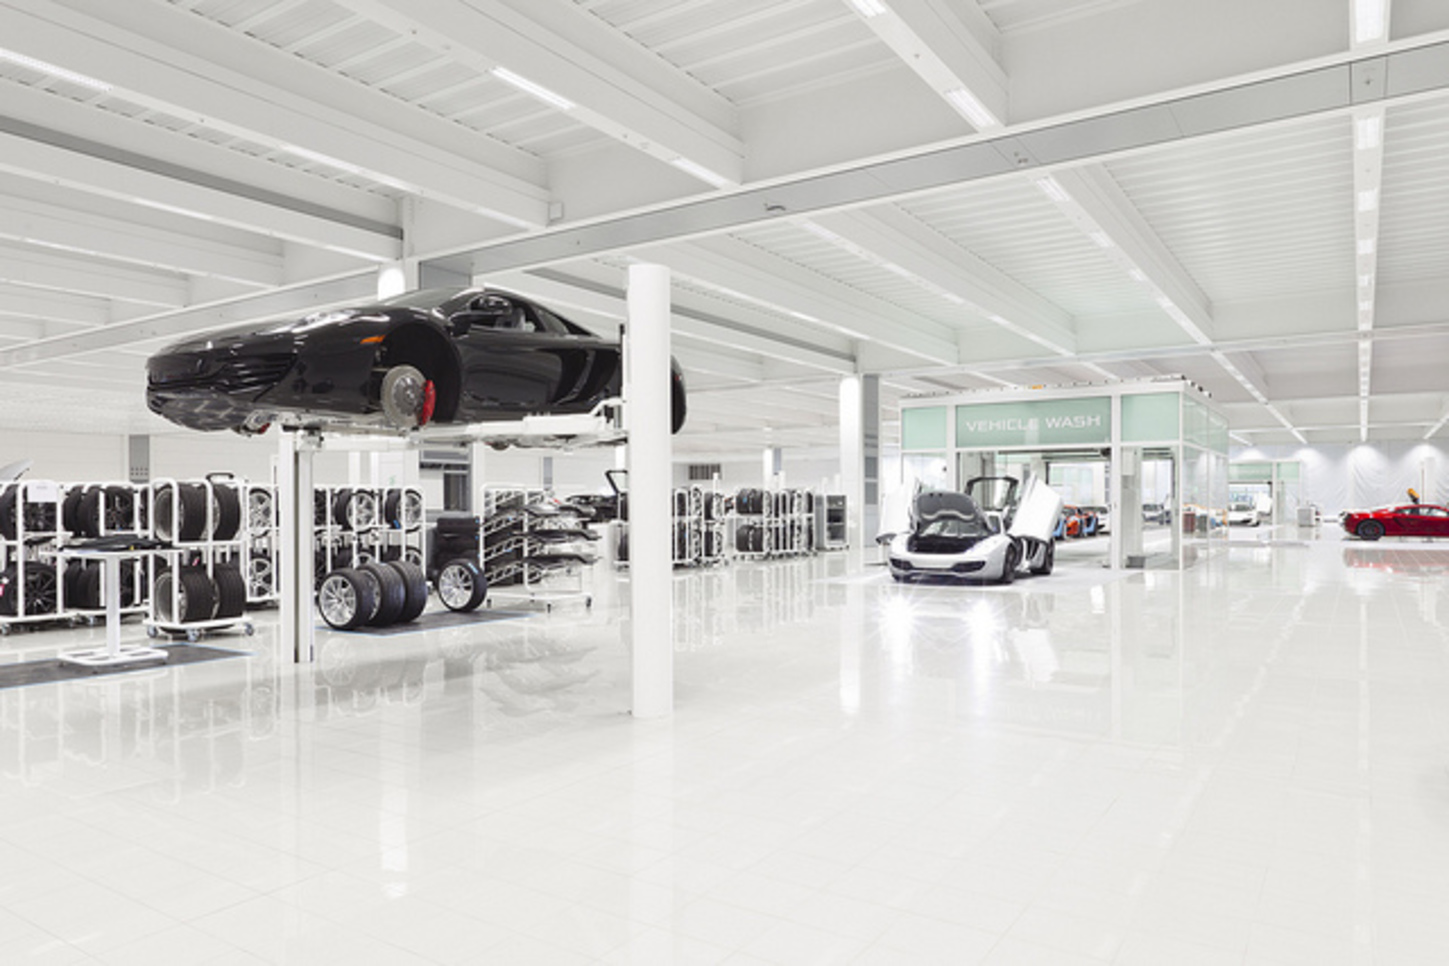 McLaren has clear aesthetic links with Apple. Inside the the Woking production centre.